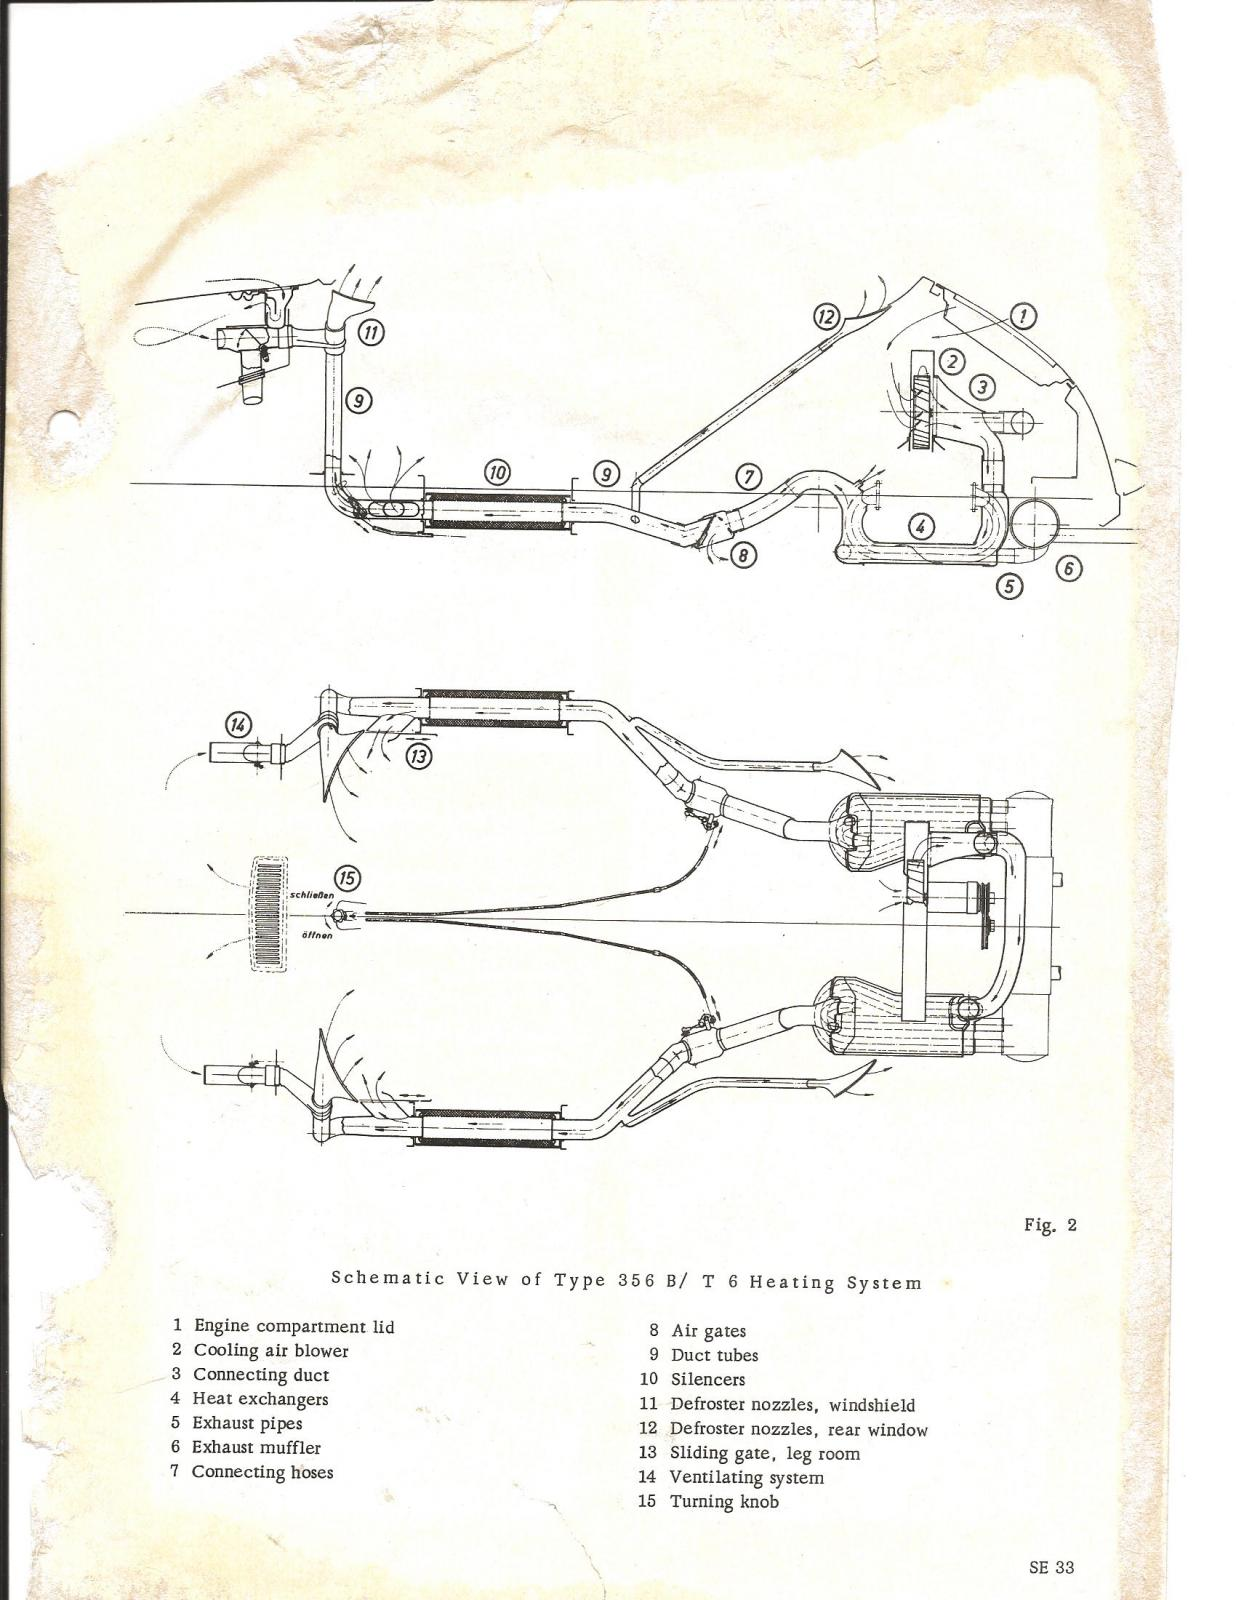 Porsche 356 View Topic 356b European Exhaust 365 Engine Diagram Image May Have Been Reduced In Size Click To Fullscreen